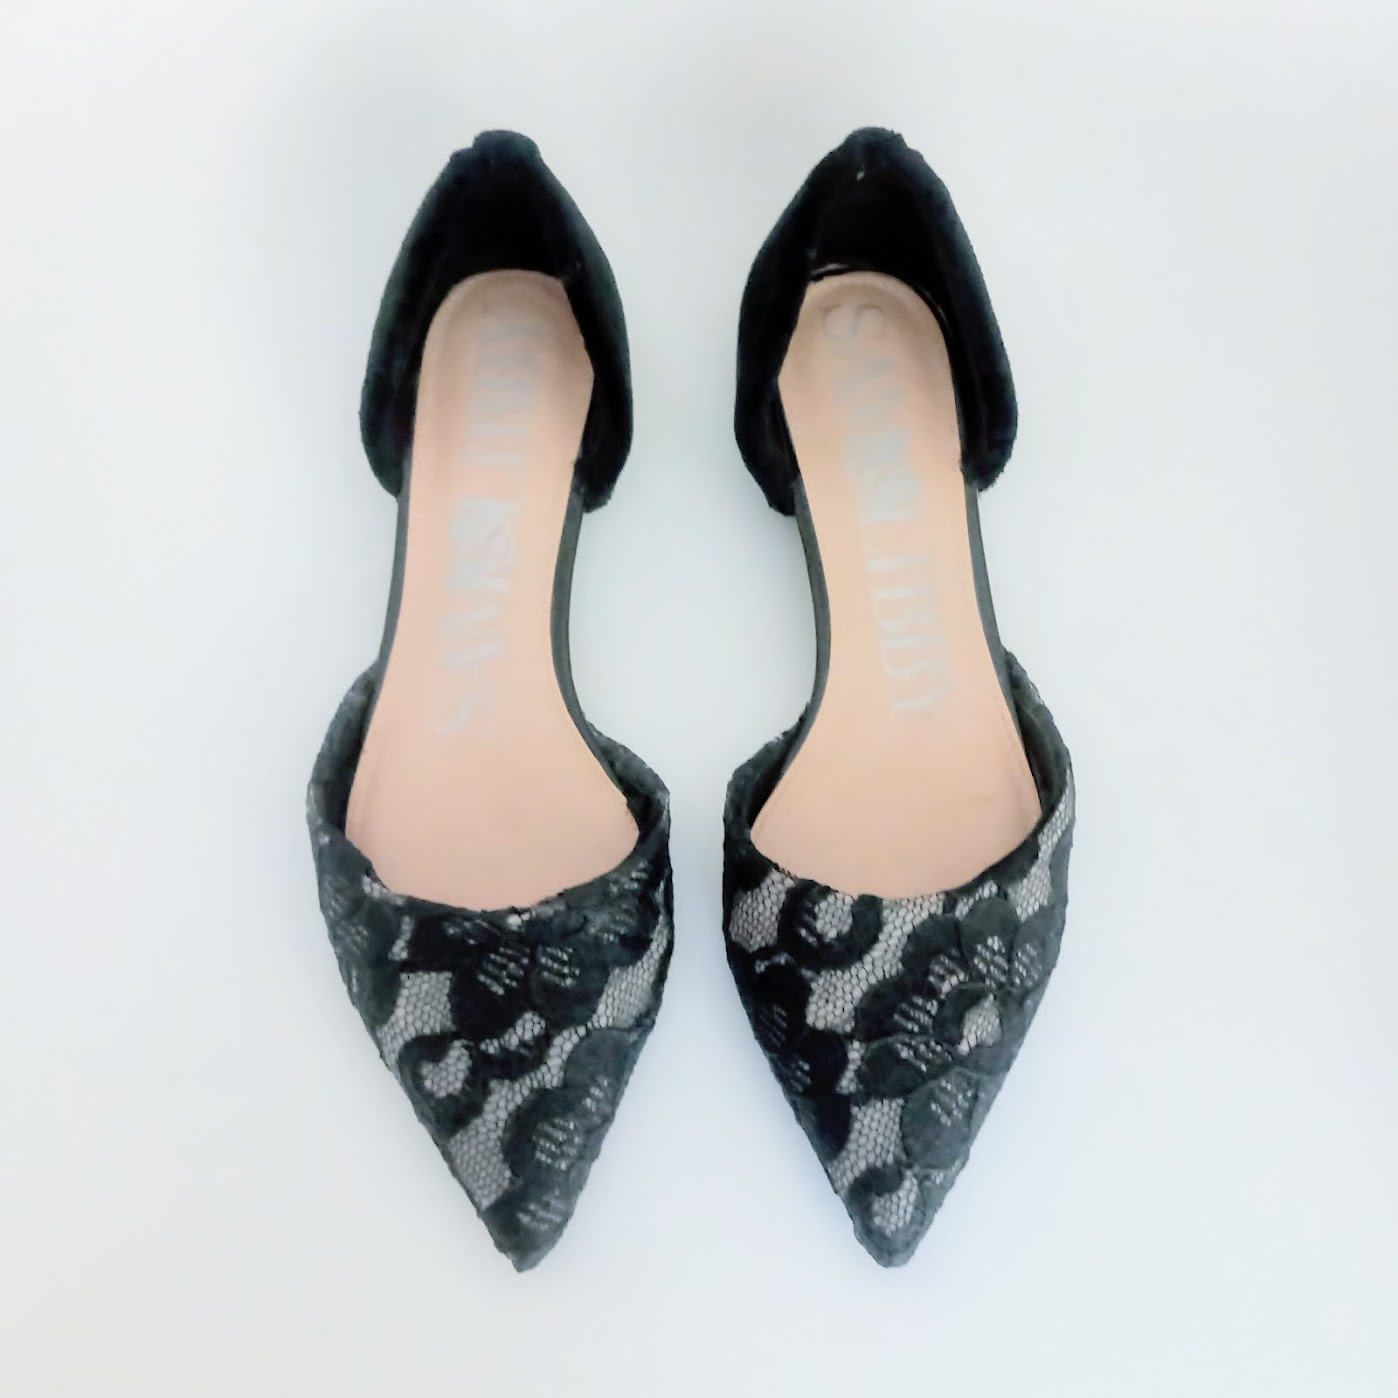 Lace Flats with Velvet Detail - DIY Fashion project | fafafoom.com